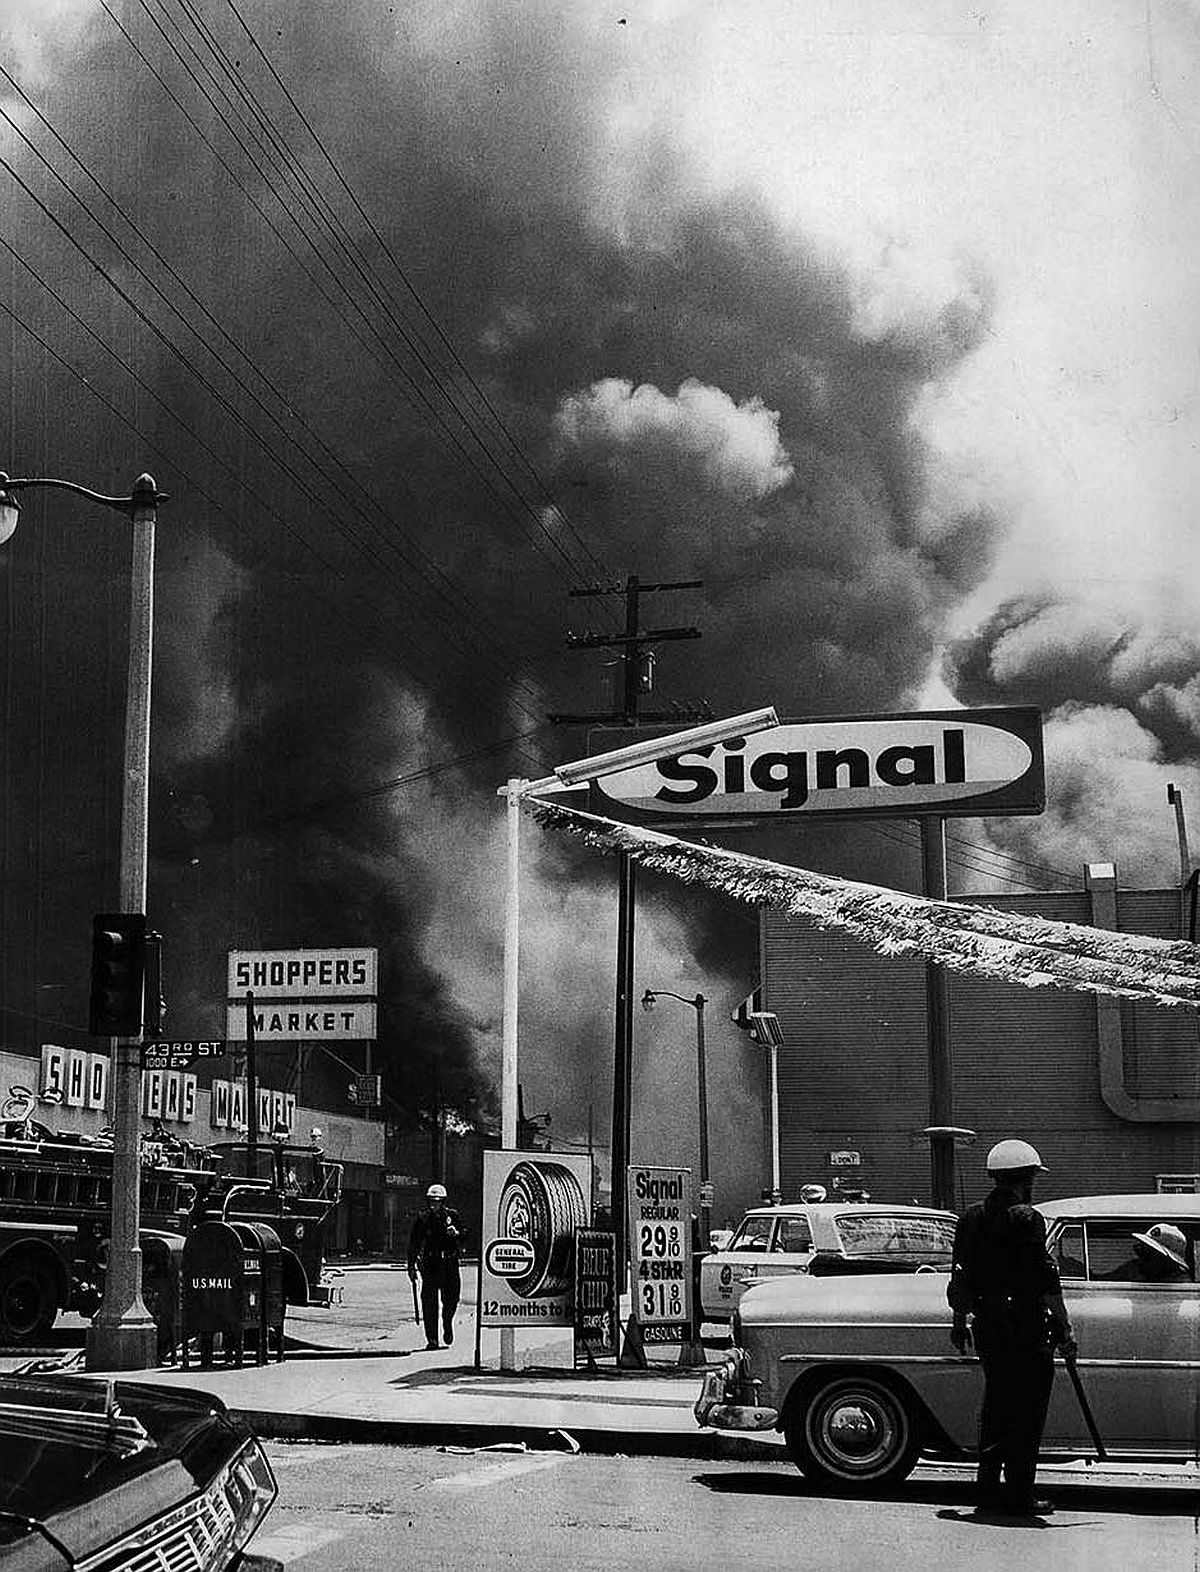 Aug. 14, 1965: Smoke from a row of buildings burning on Central Ave., south of 43rd St. darkens sky during Watts Riots.